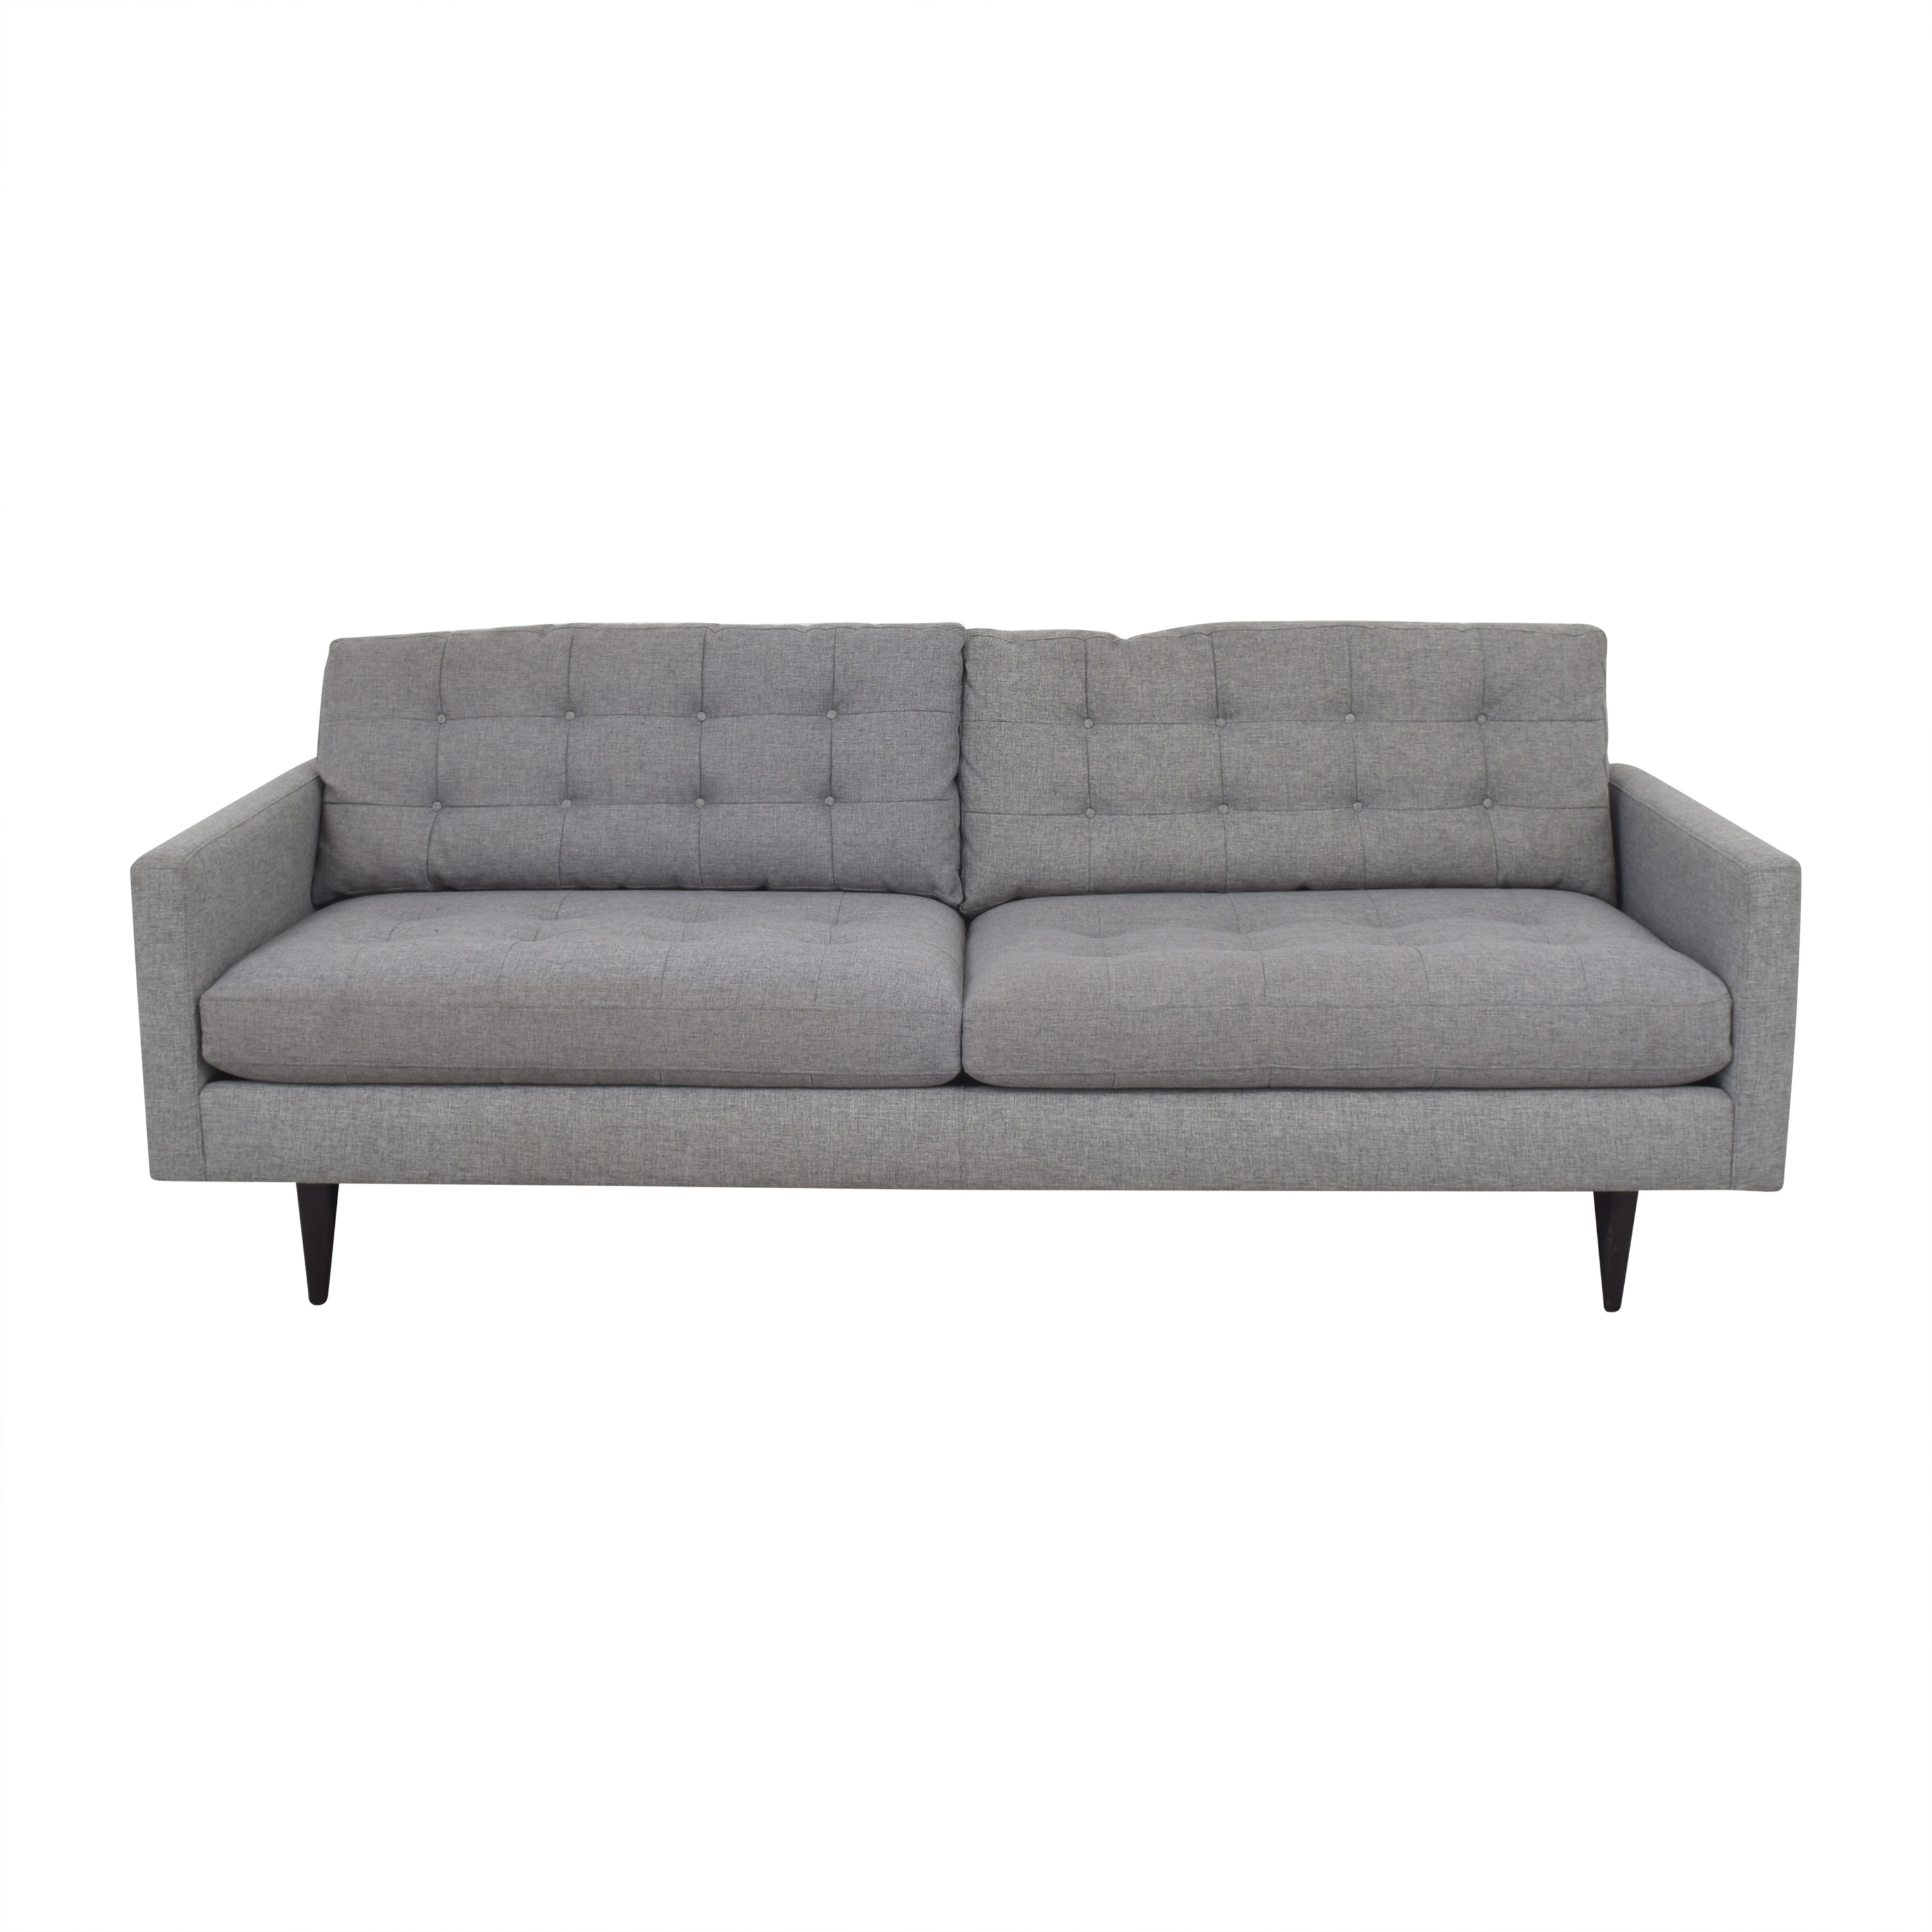 shop Crate & Barrel Petrie Mid-Century Sofa Crate & Barrel Classic Sofas